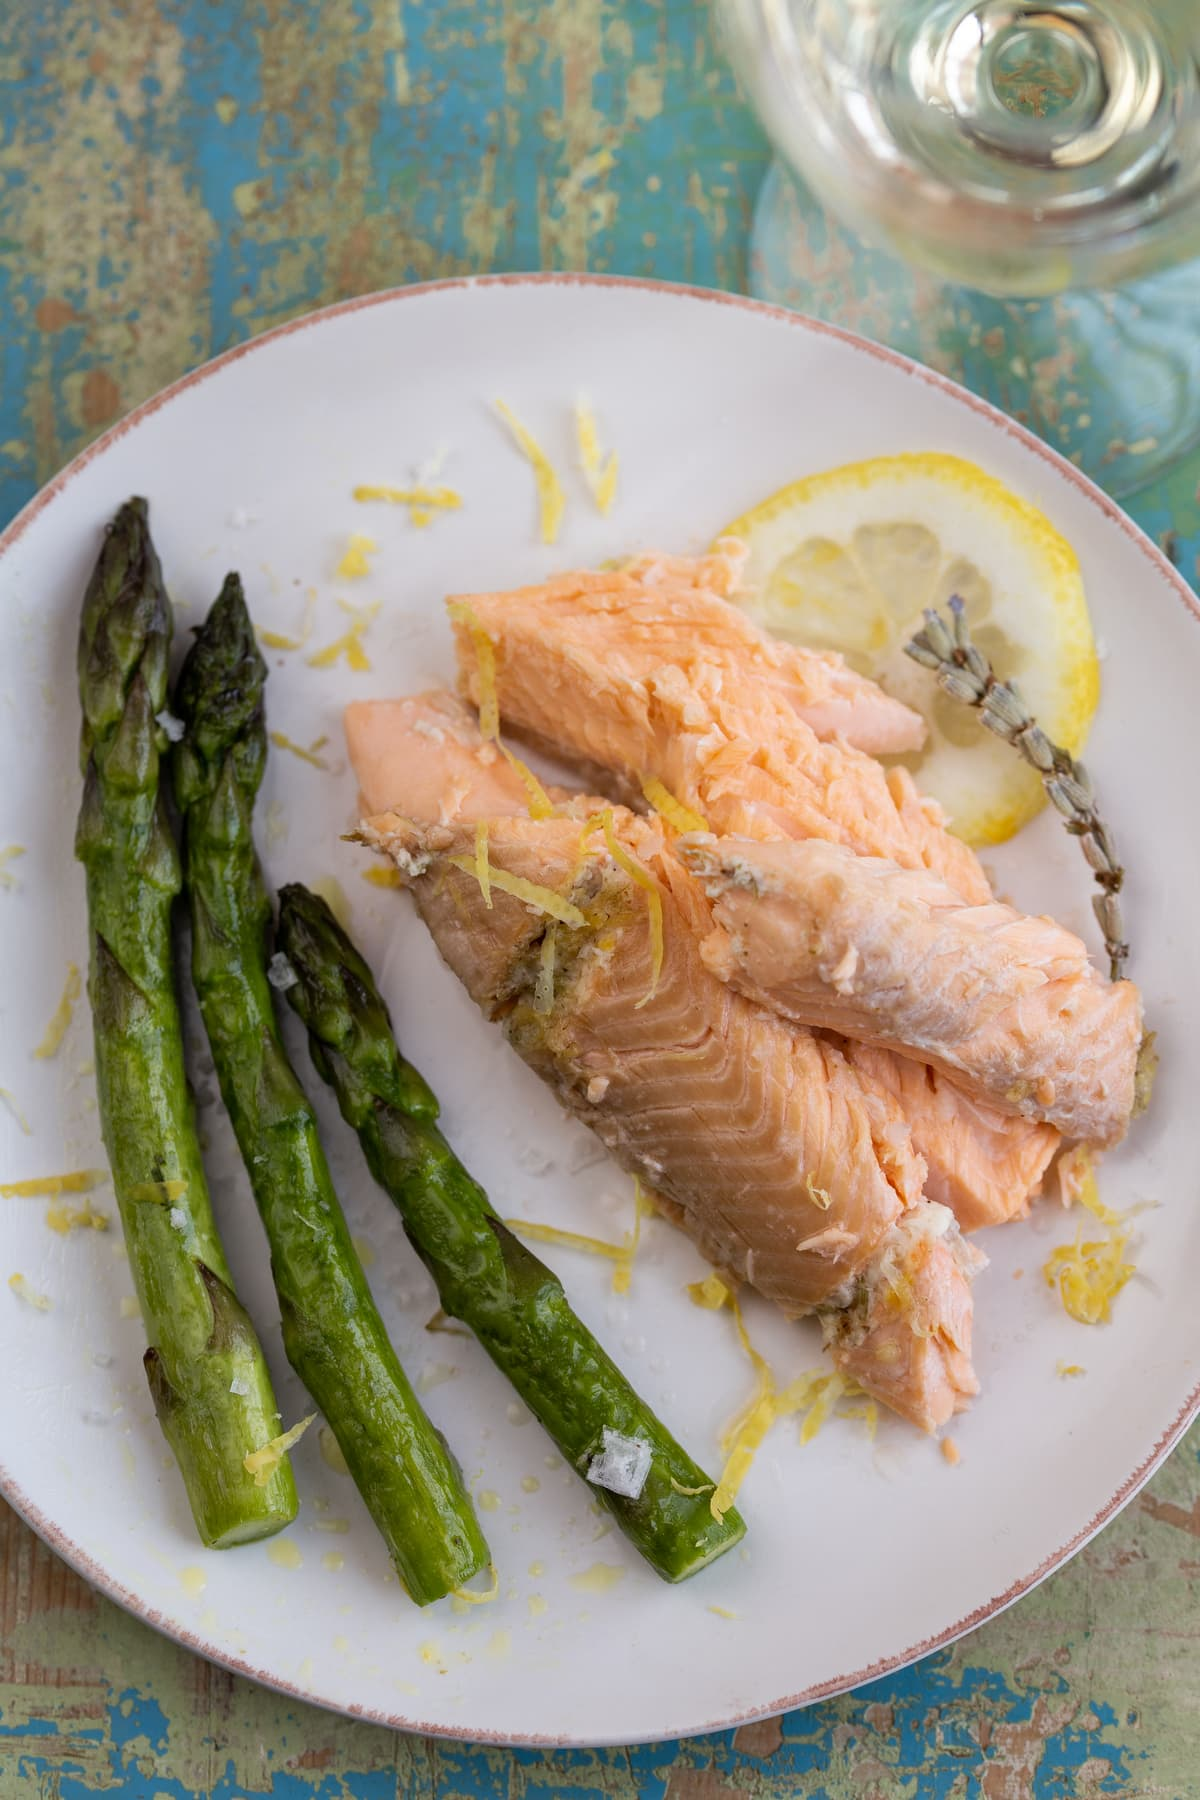 Baked trout fillets served with asparagus.